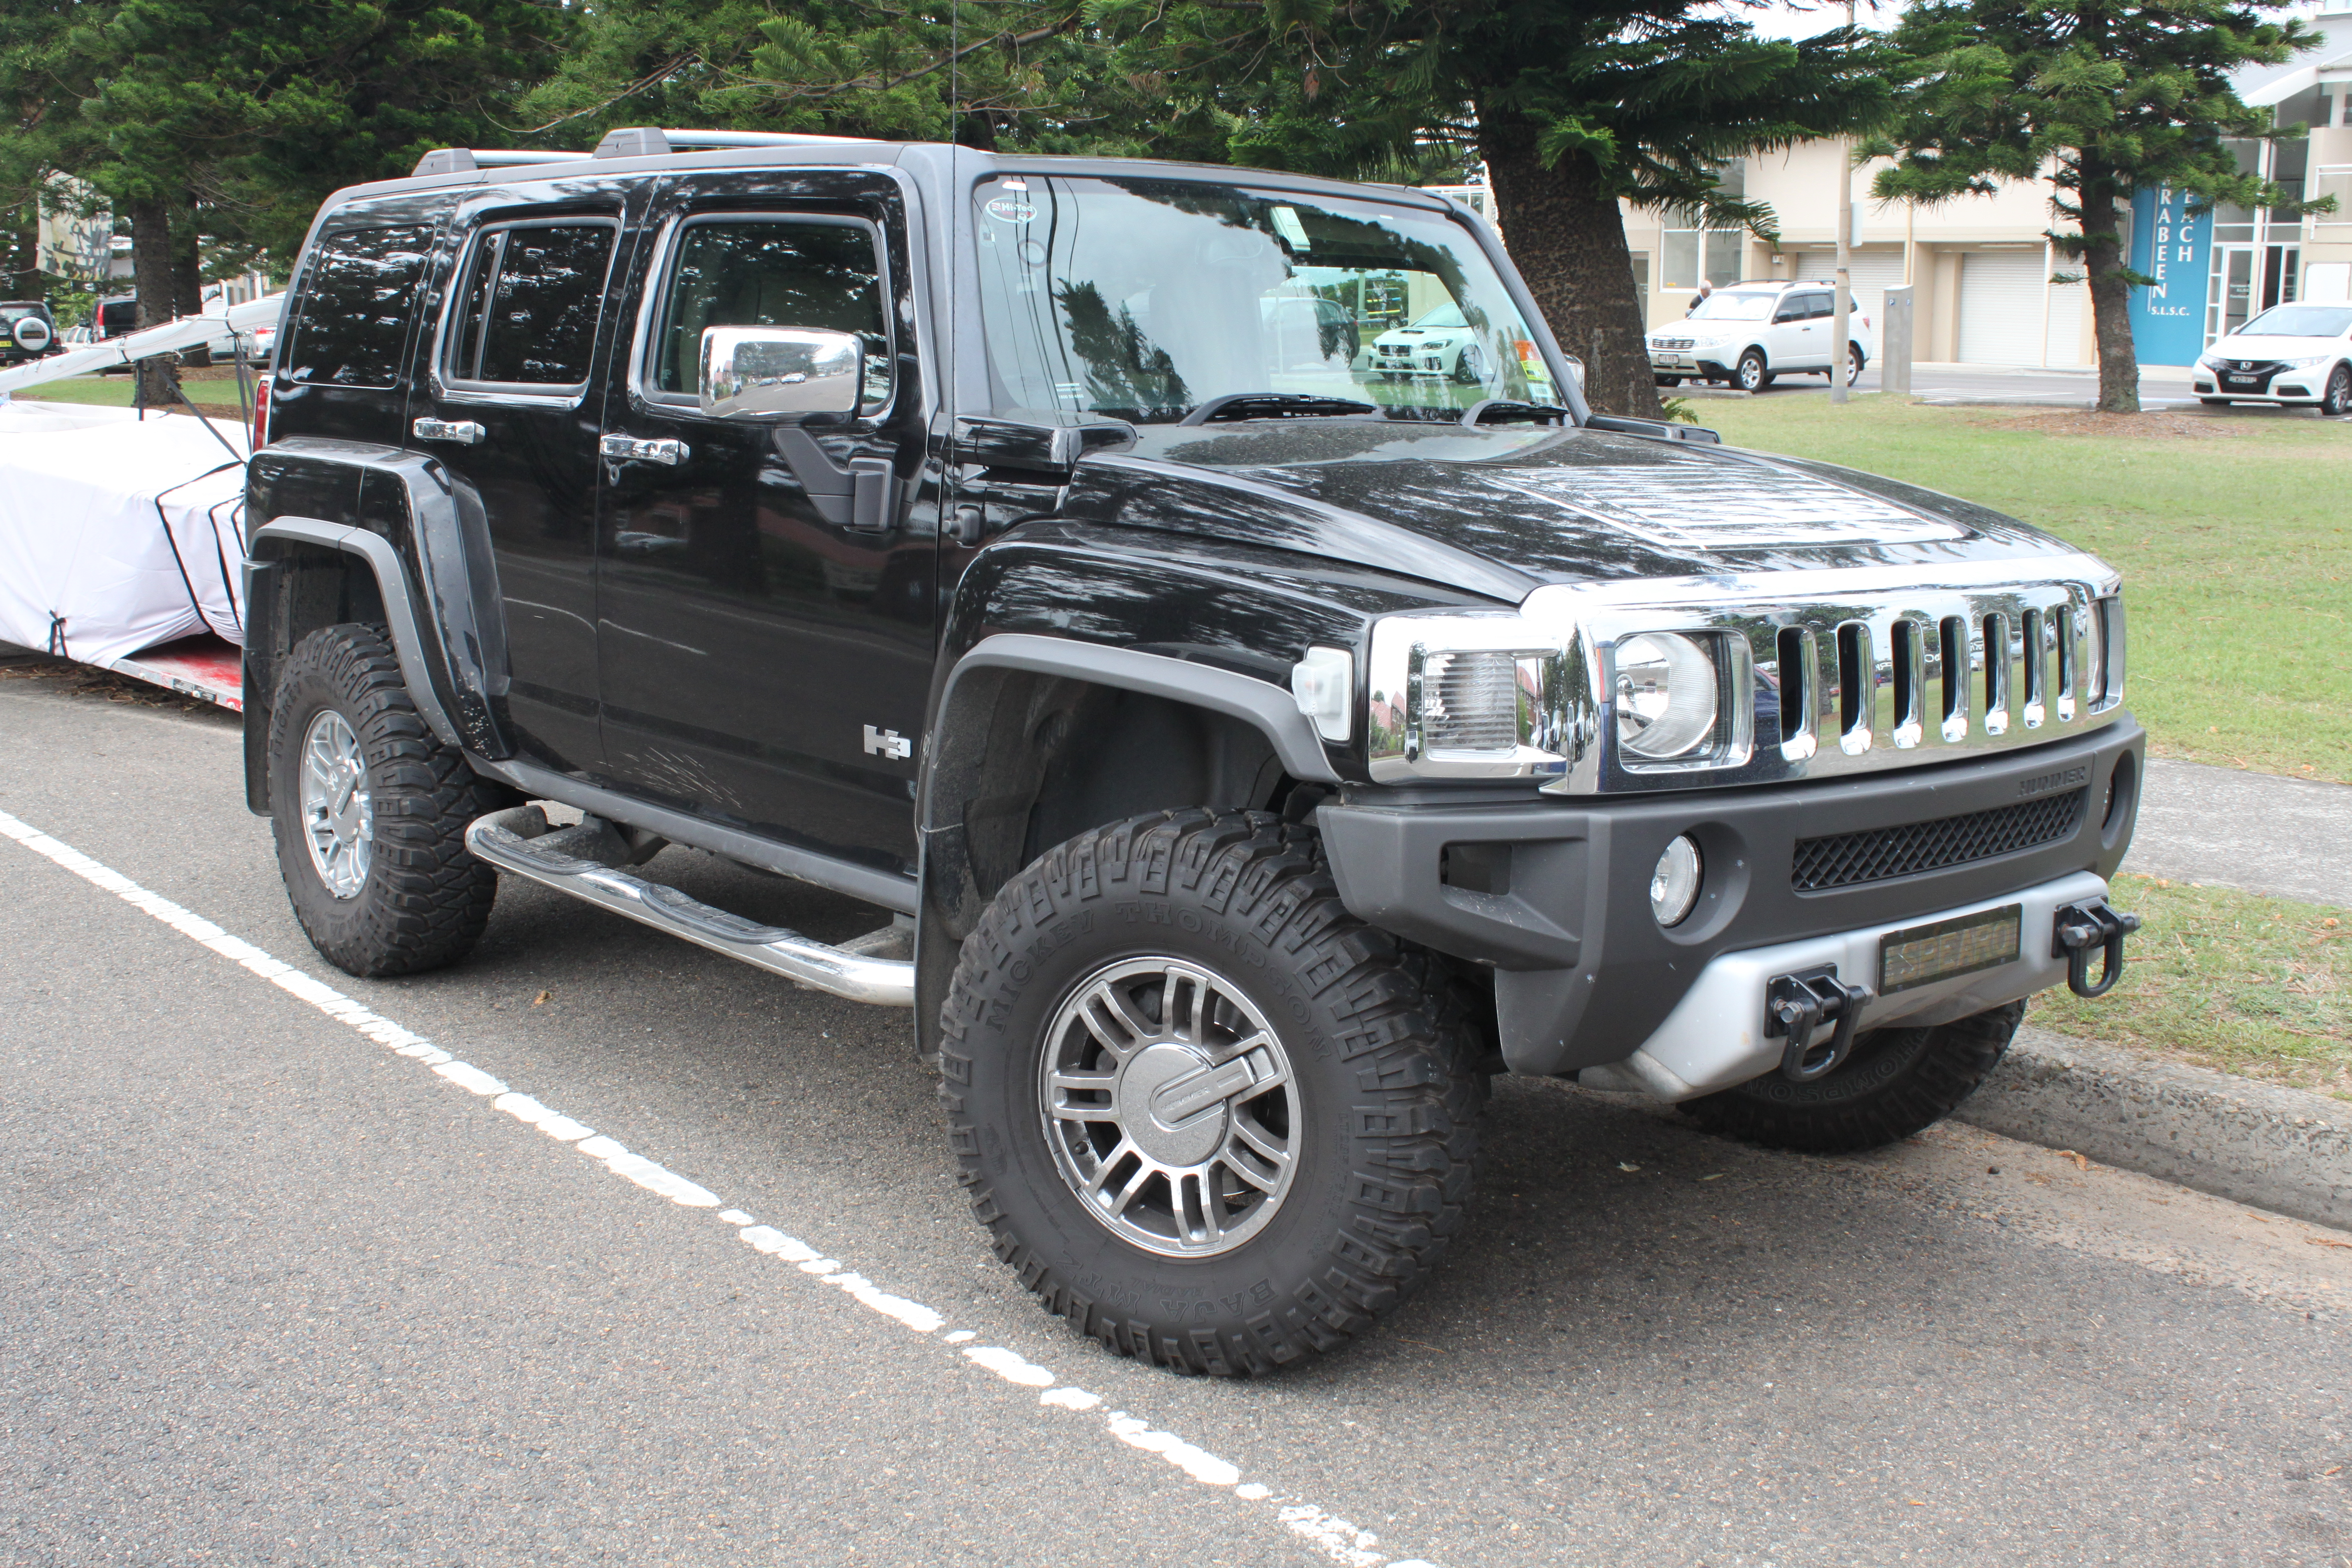 File:113 Hummer H13 wagon (228137607164).jpg - Wikimedia Commons | h3 hummer 2015